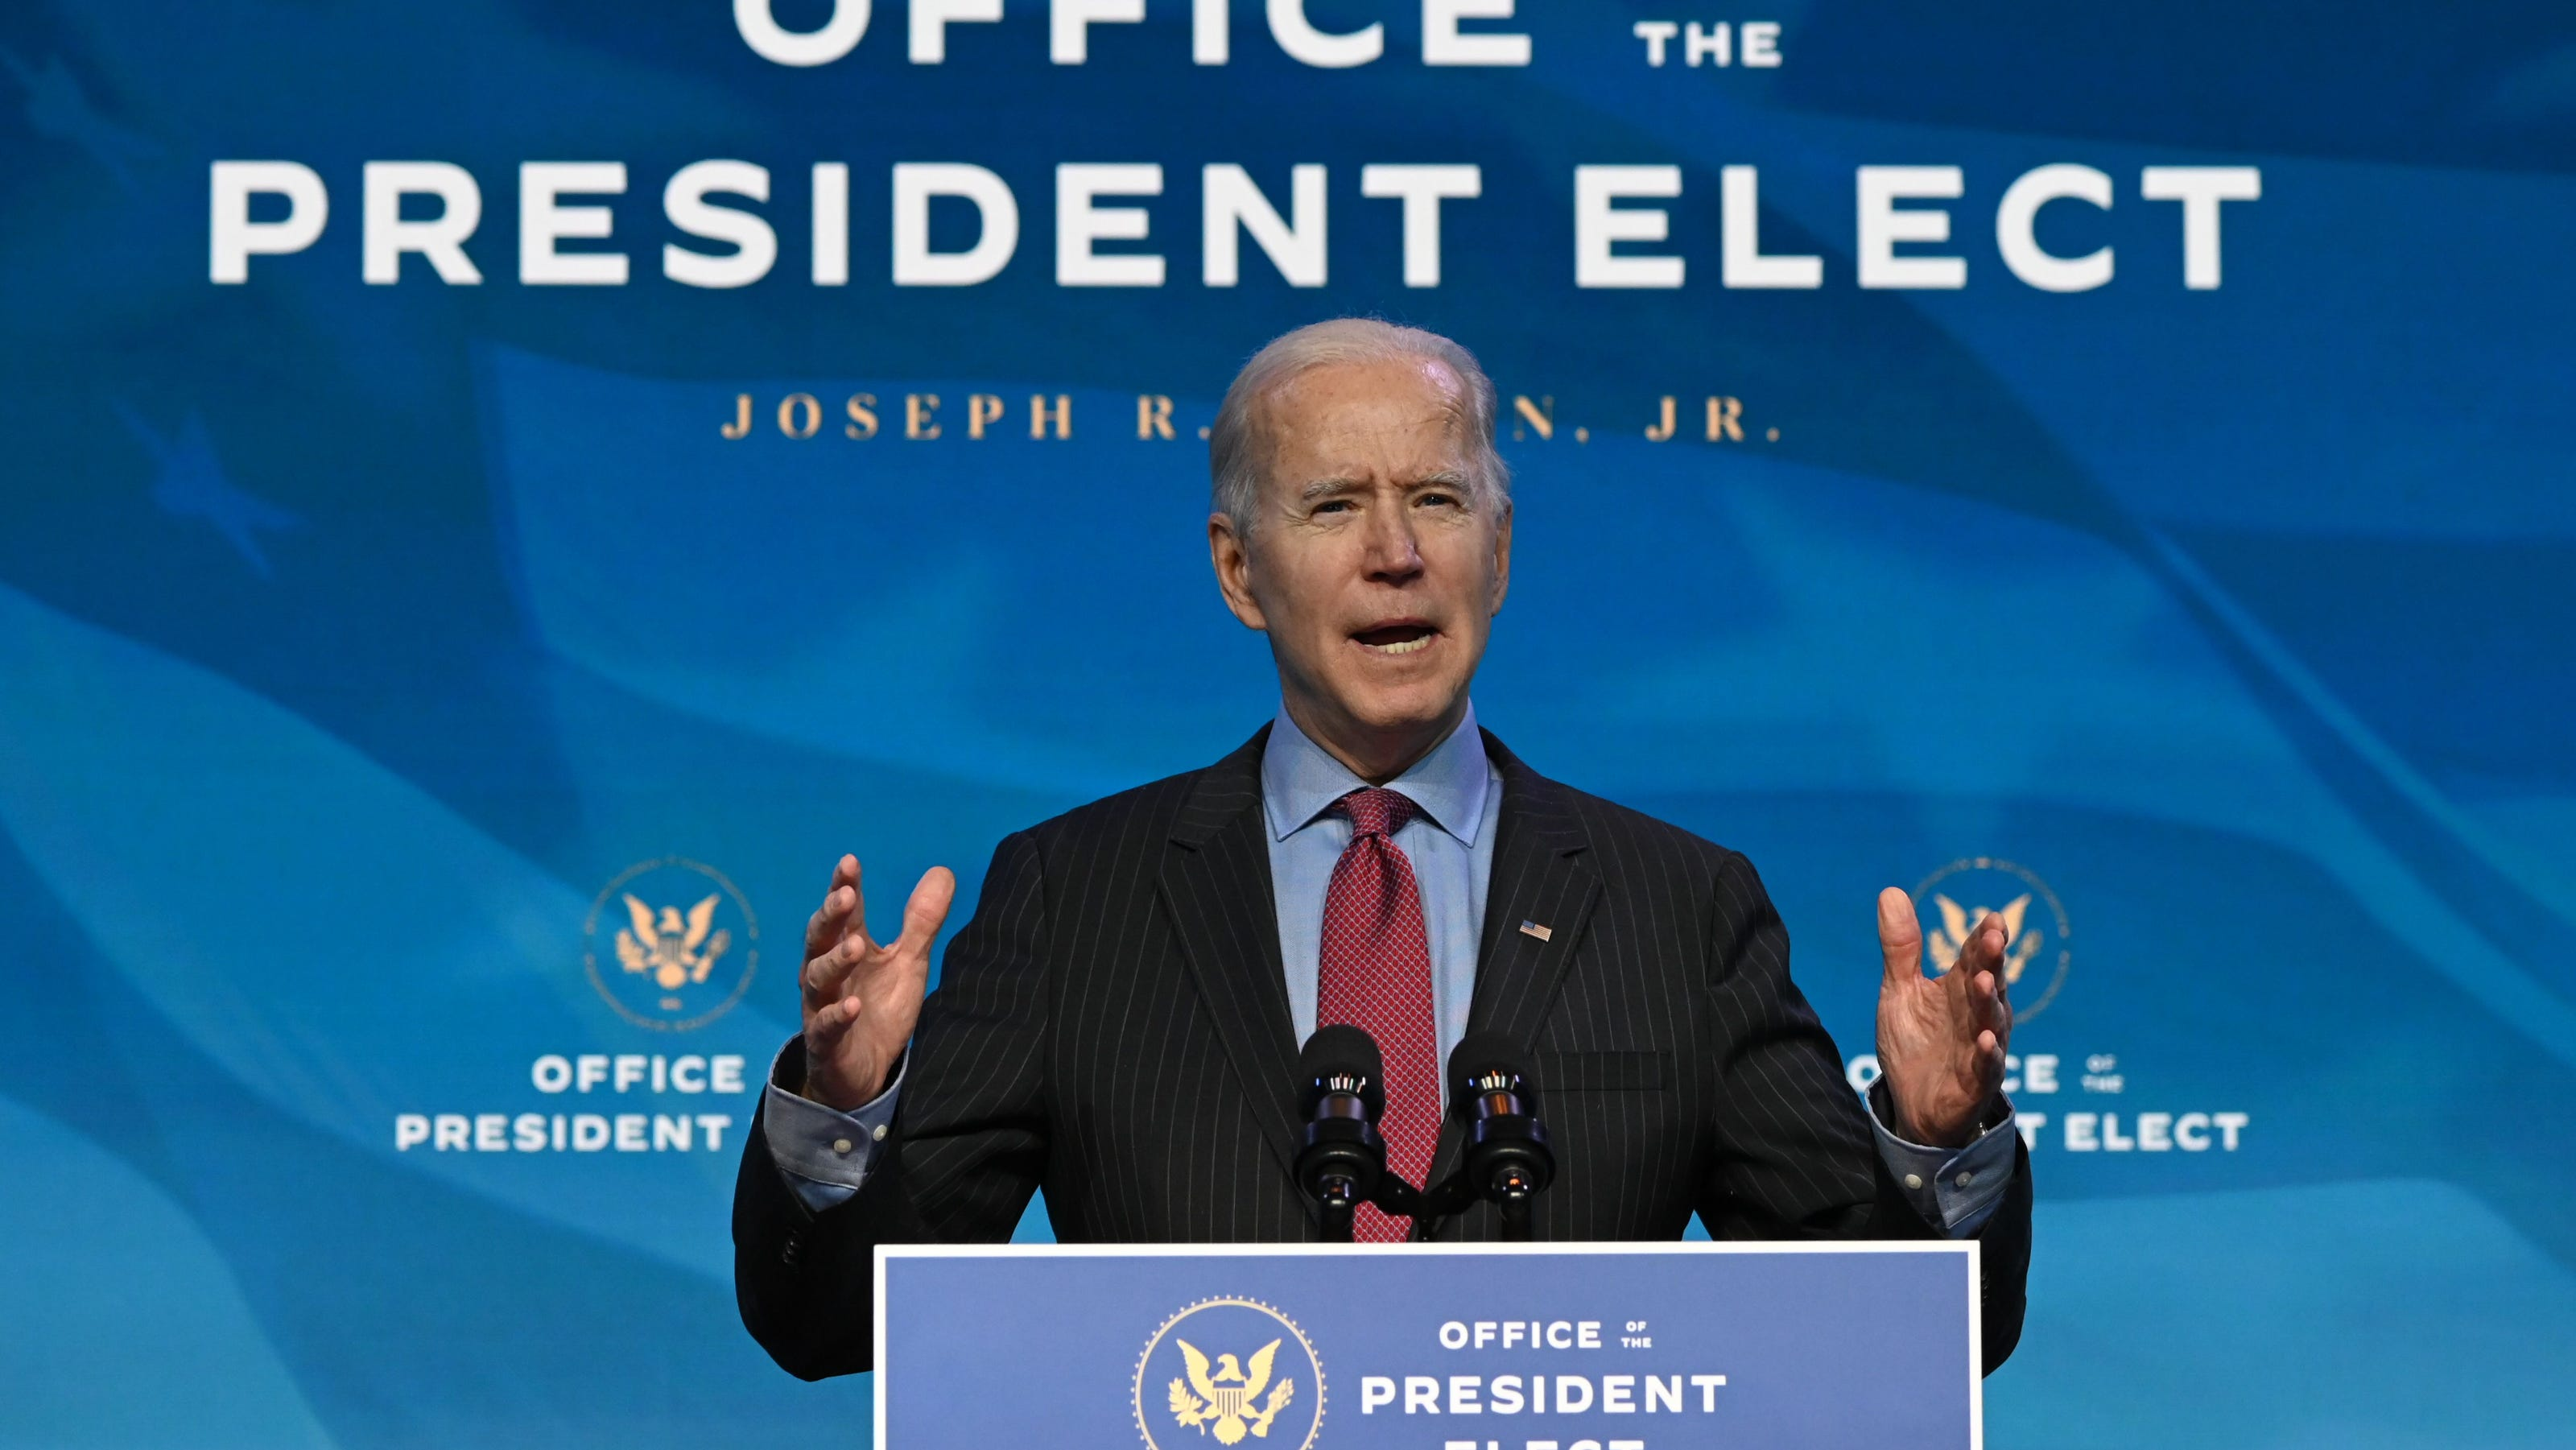 www.usatoday.com: Fact check: Biden said he plans to increase COVID-19 small business relief to people of color and women